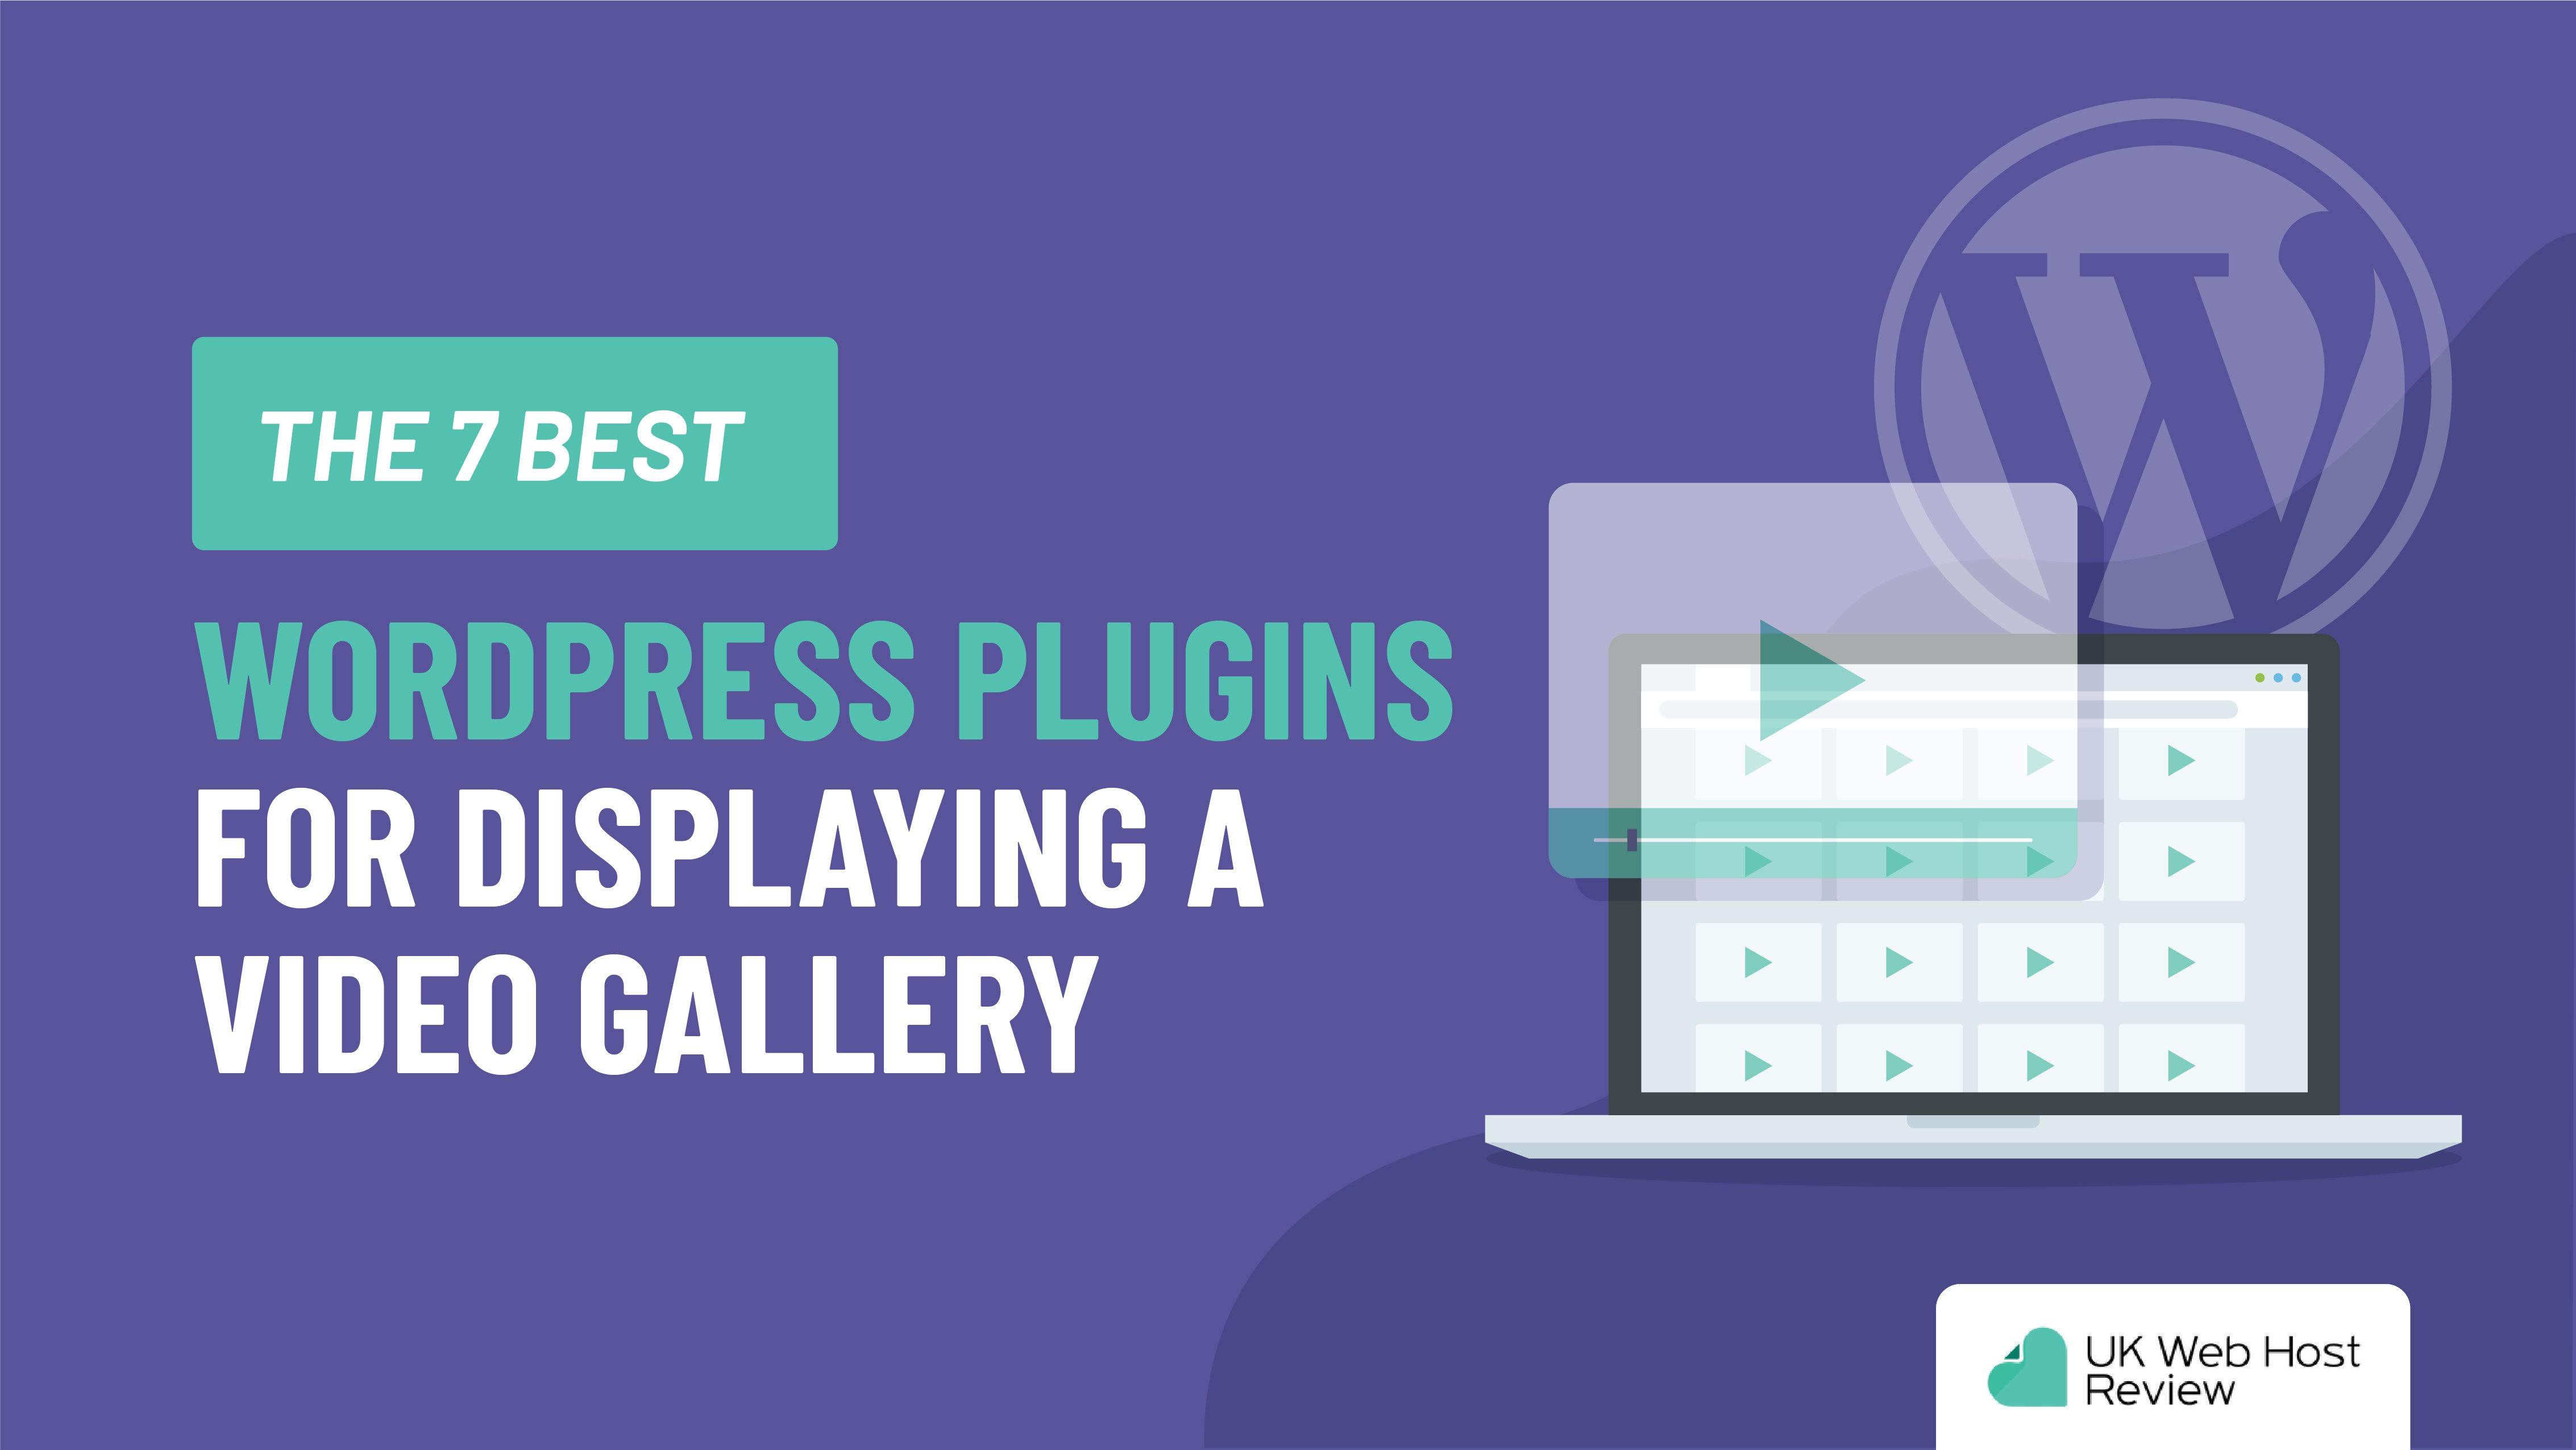 The 7 Best WordPress Plugins for Displaying a Video Gallery